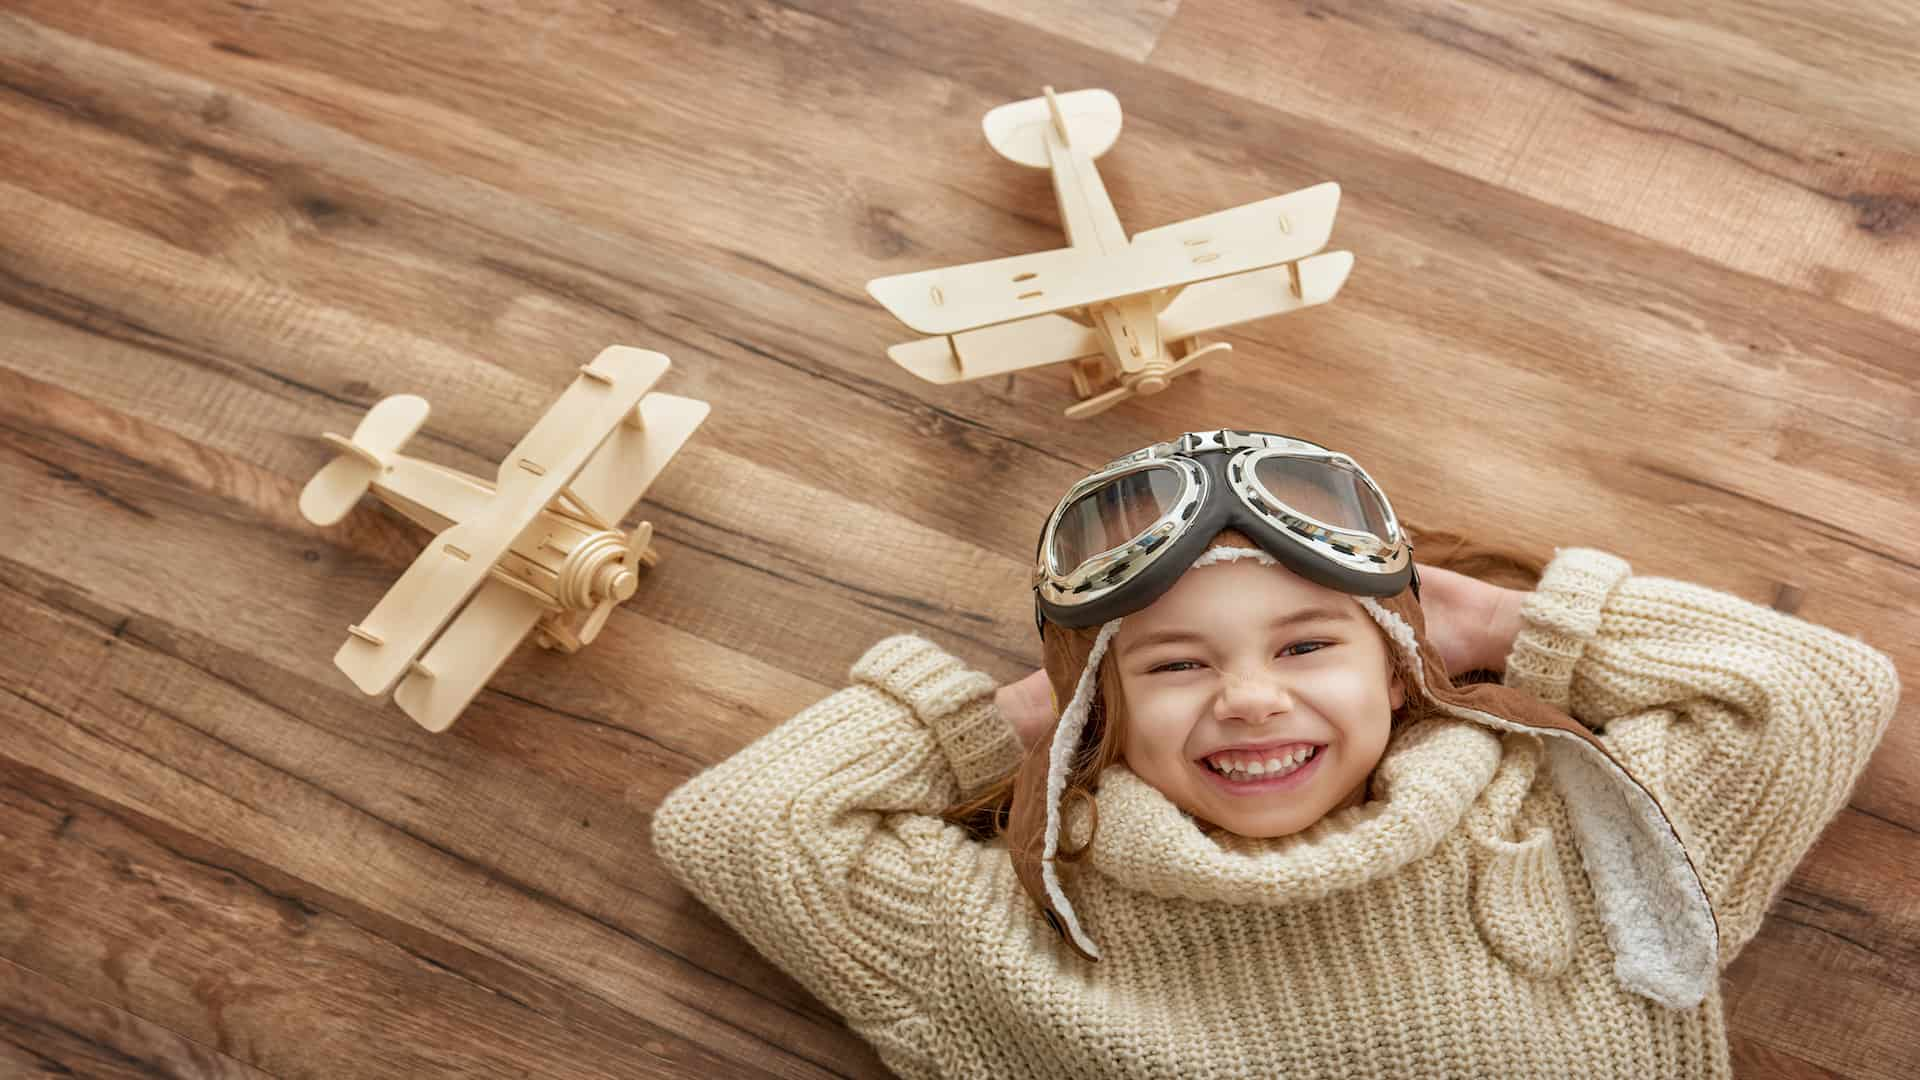 Best Wooden Toys 2020: Shopping Guide & Review